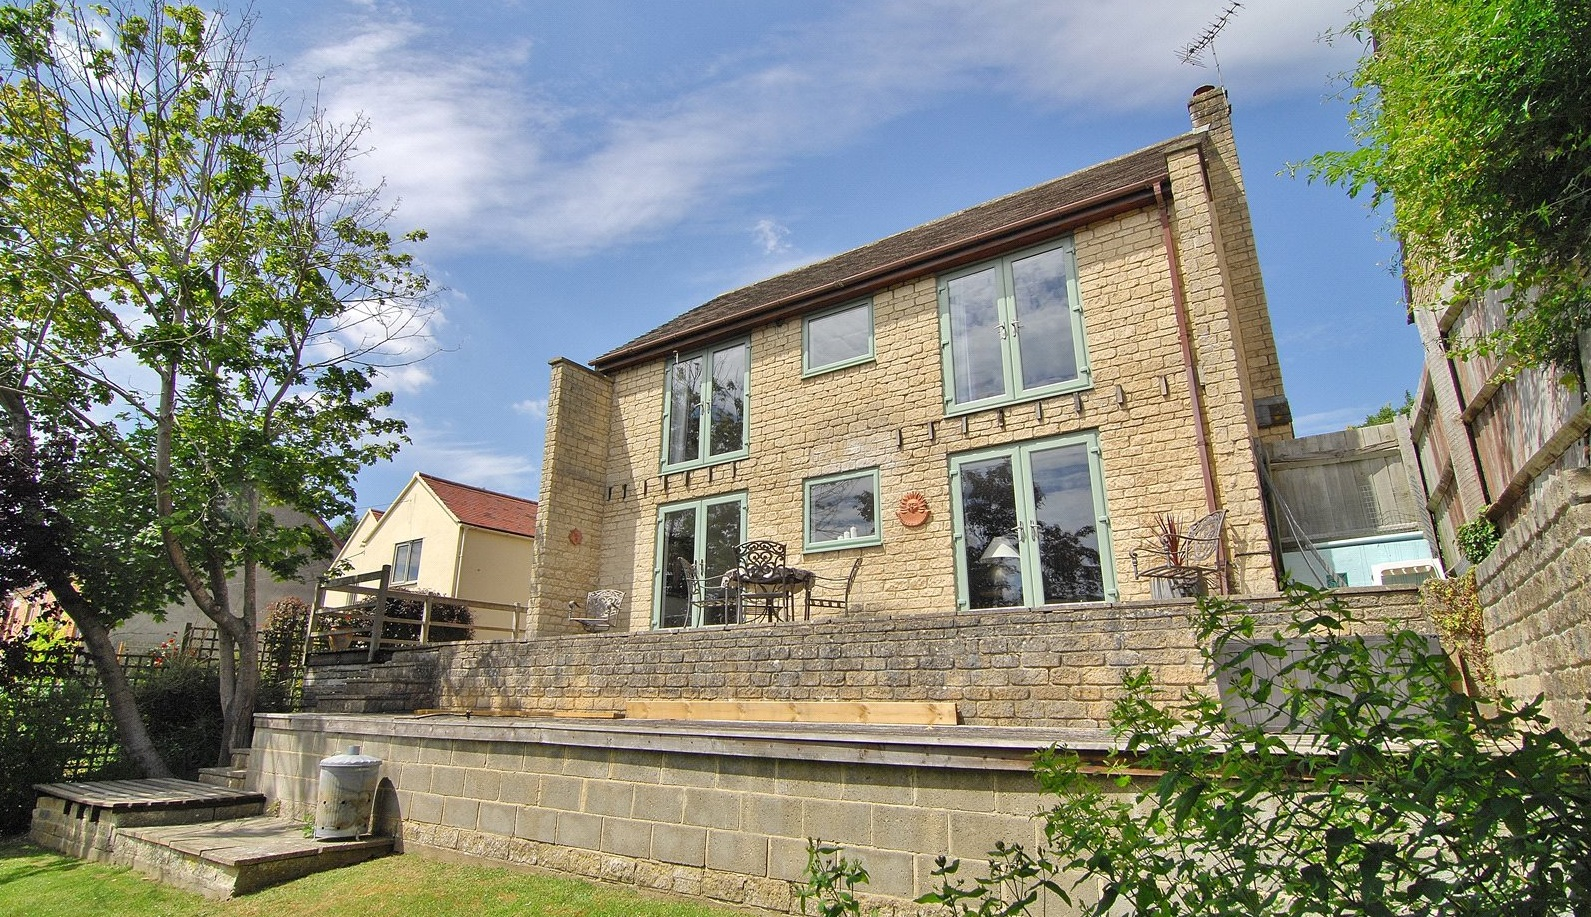 Homes for sale in Stroud: Five of the best on the market